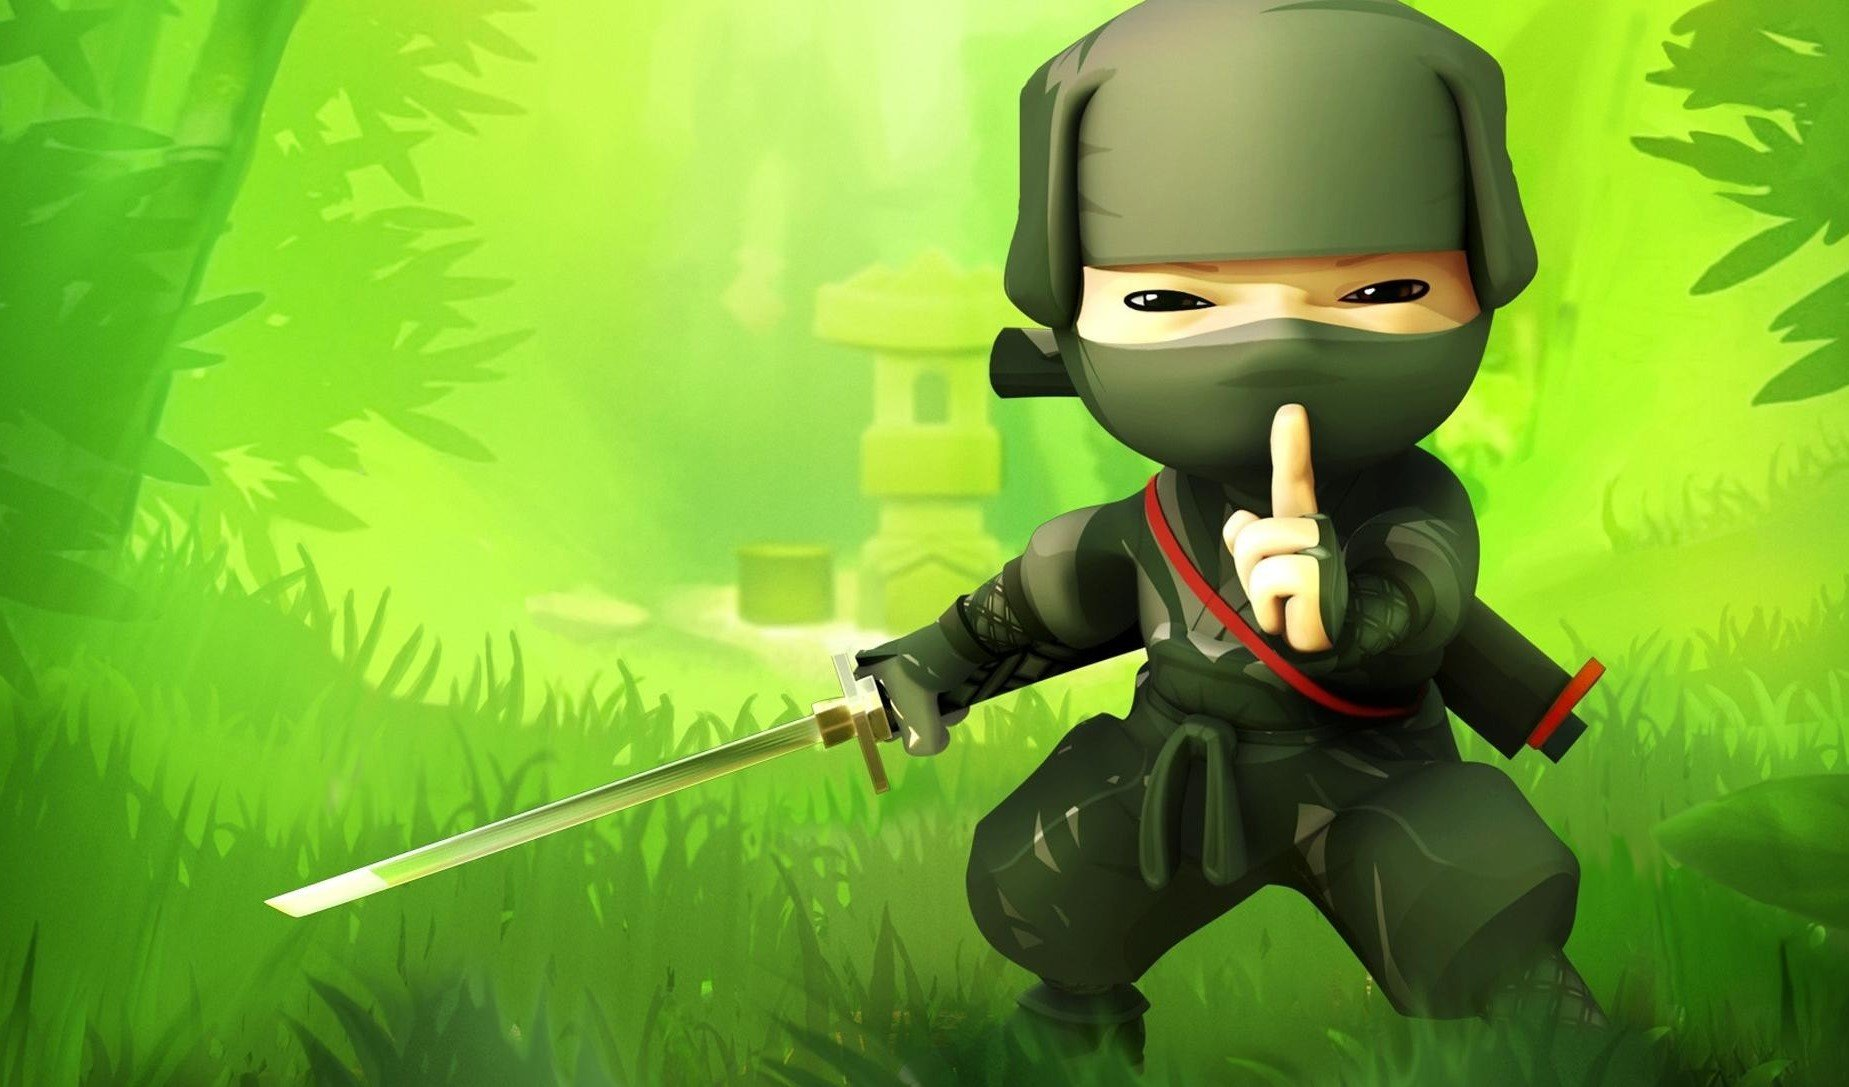 You can nab Mini Ninjas for free on PC with some convoluted steps screenshot